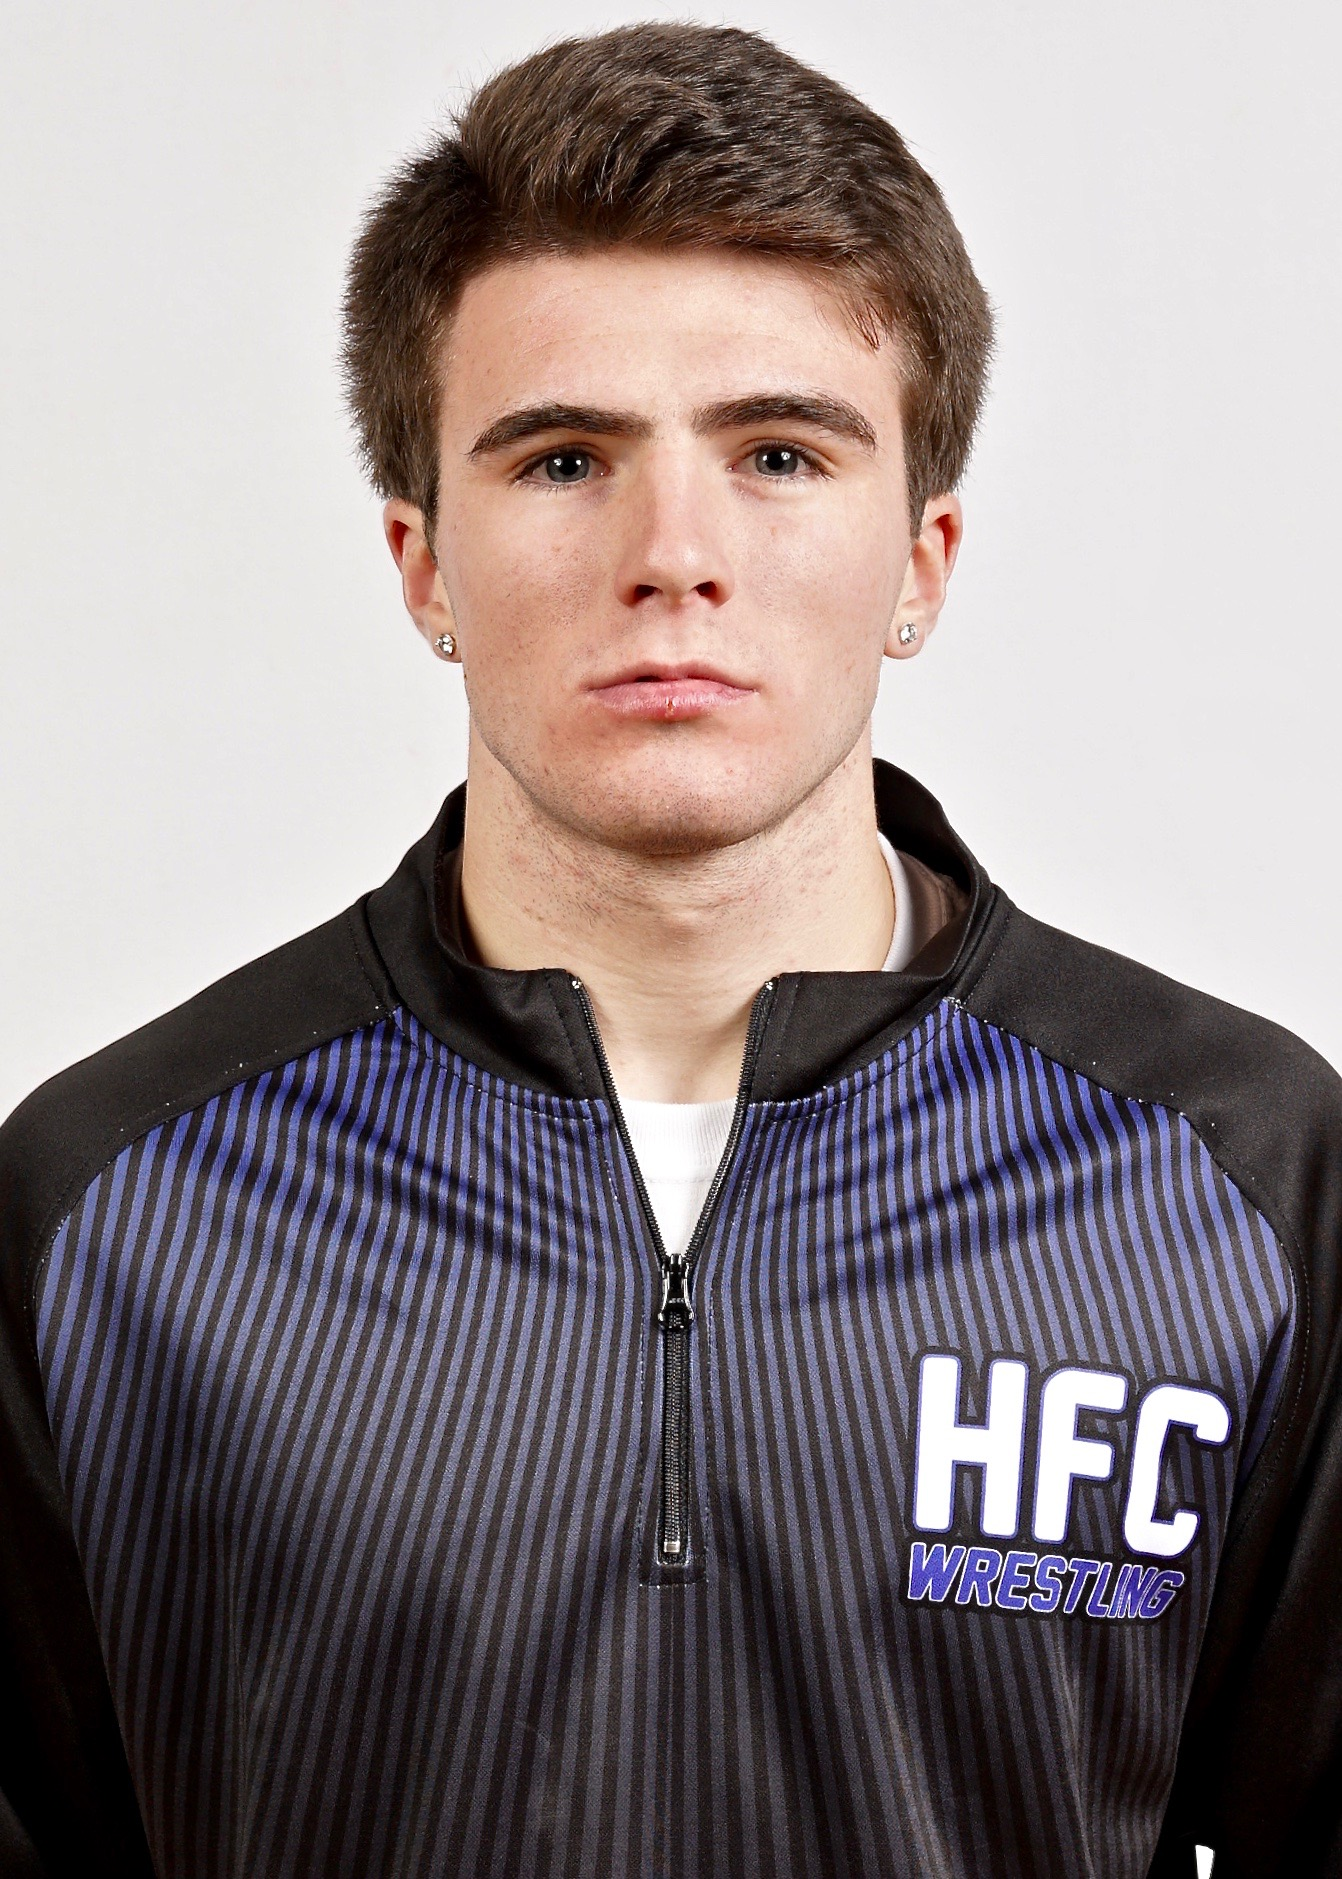 Hunter Lajiness took 4th in his weight class at the Kraft tournament, and was also among last year's HFC national qualifiers.